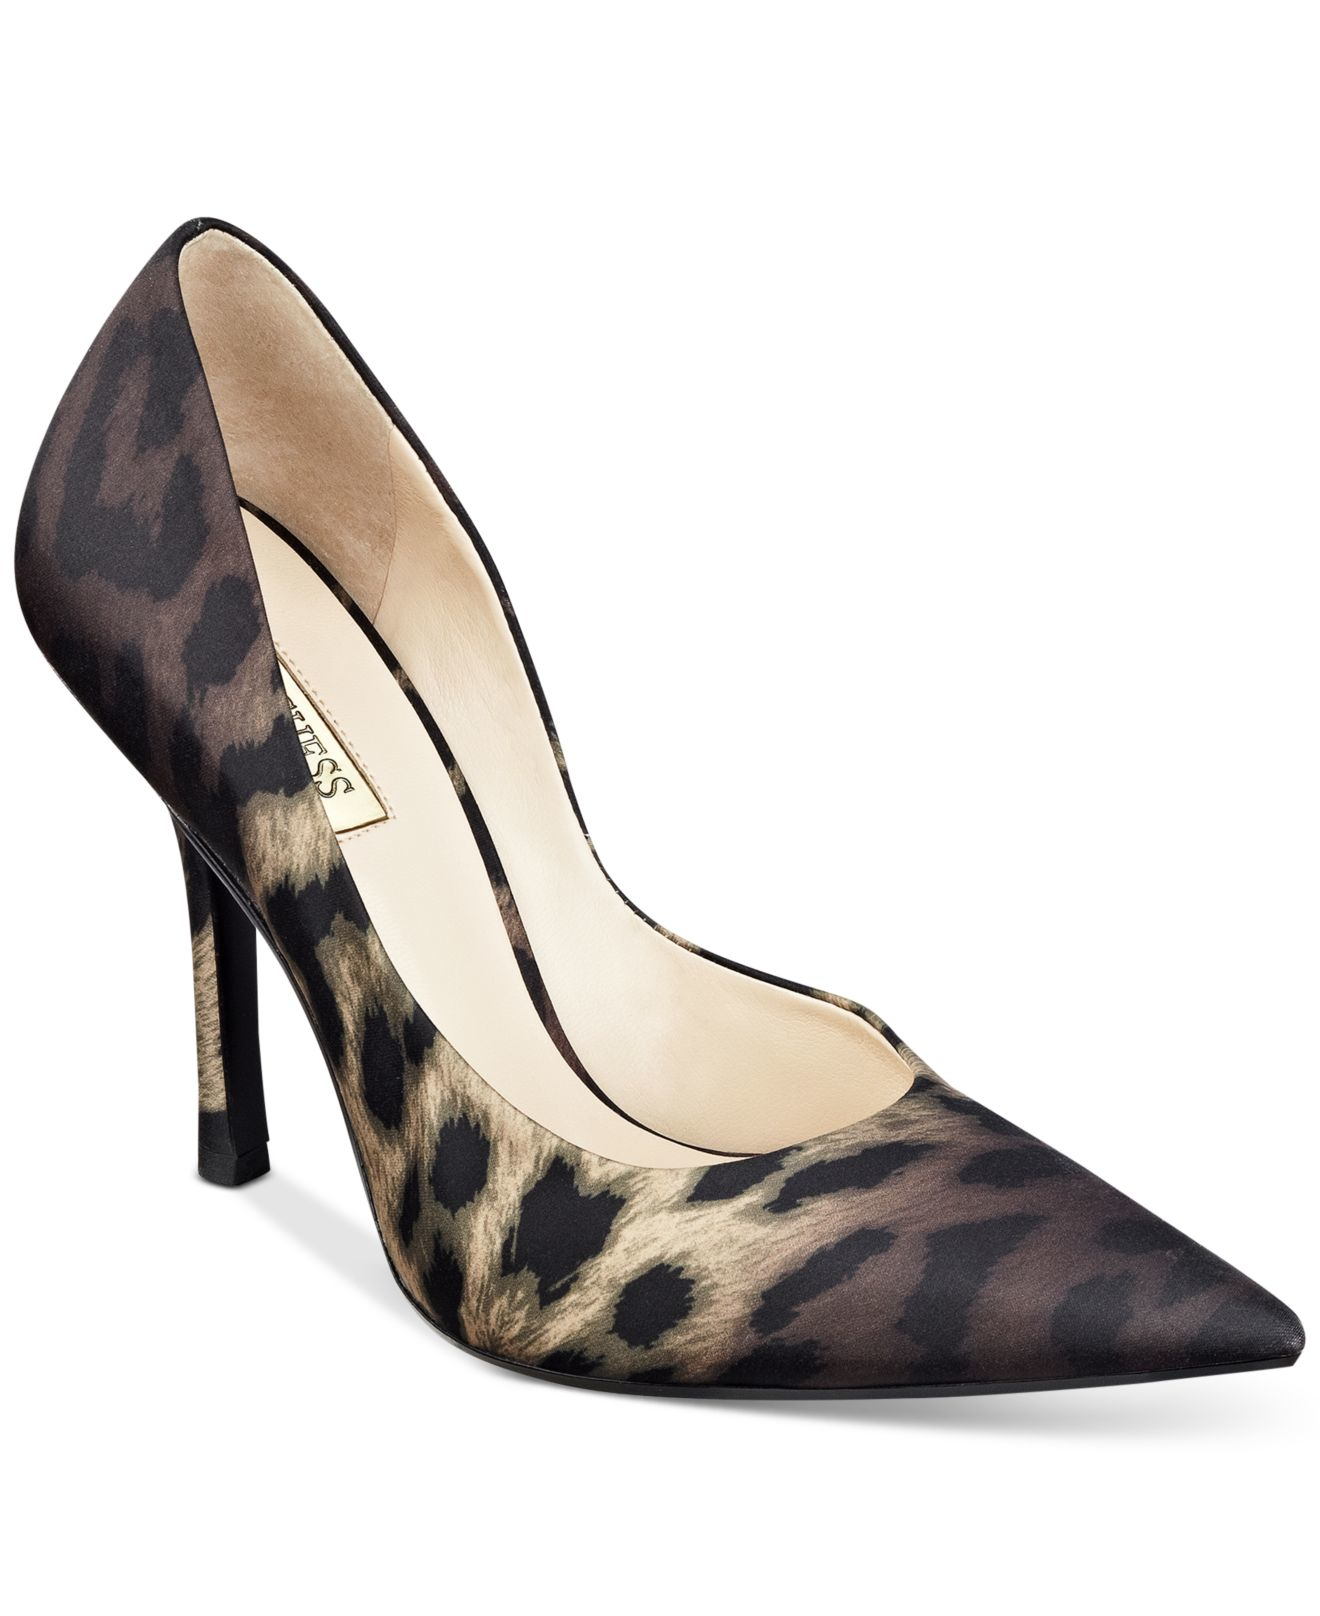 Guess Leopard Print Heels Shoes